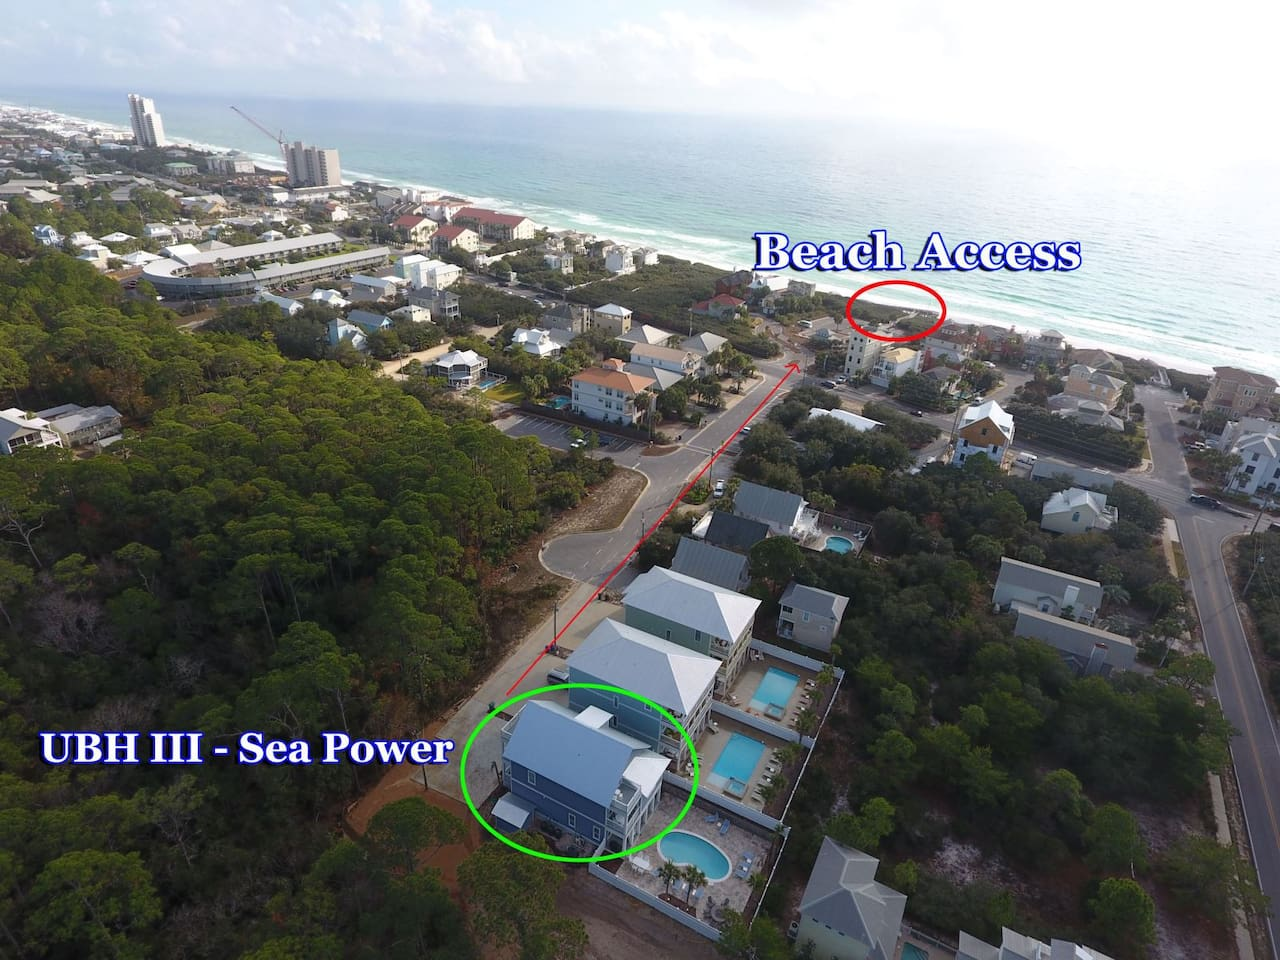 Aerial view of home and beach access